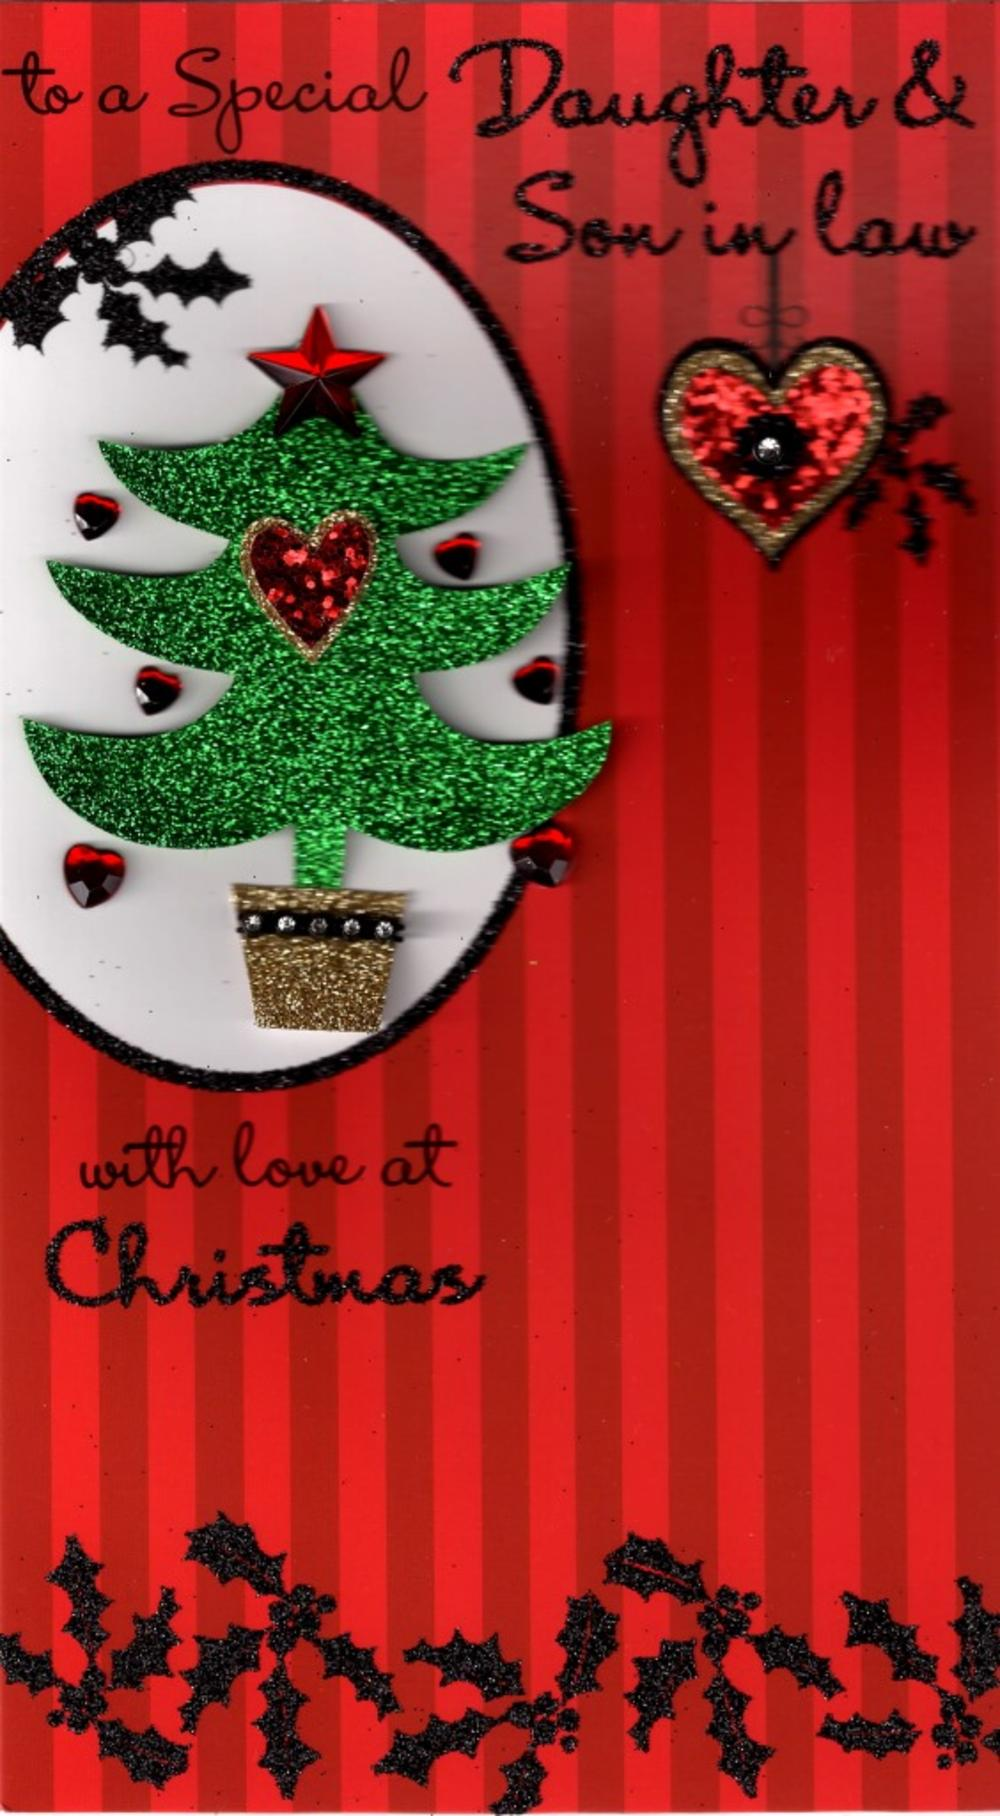 Daughter & Son-In-Law Luxury Handmade Christmas Card